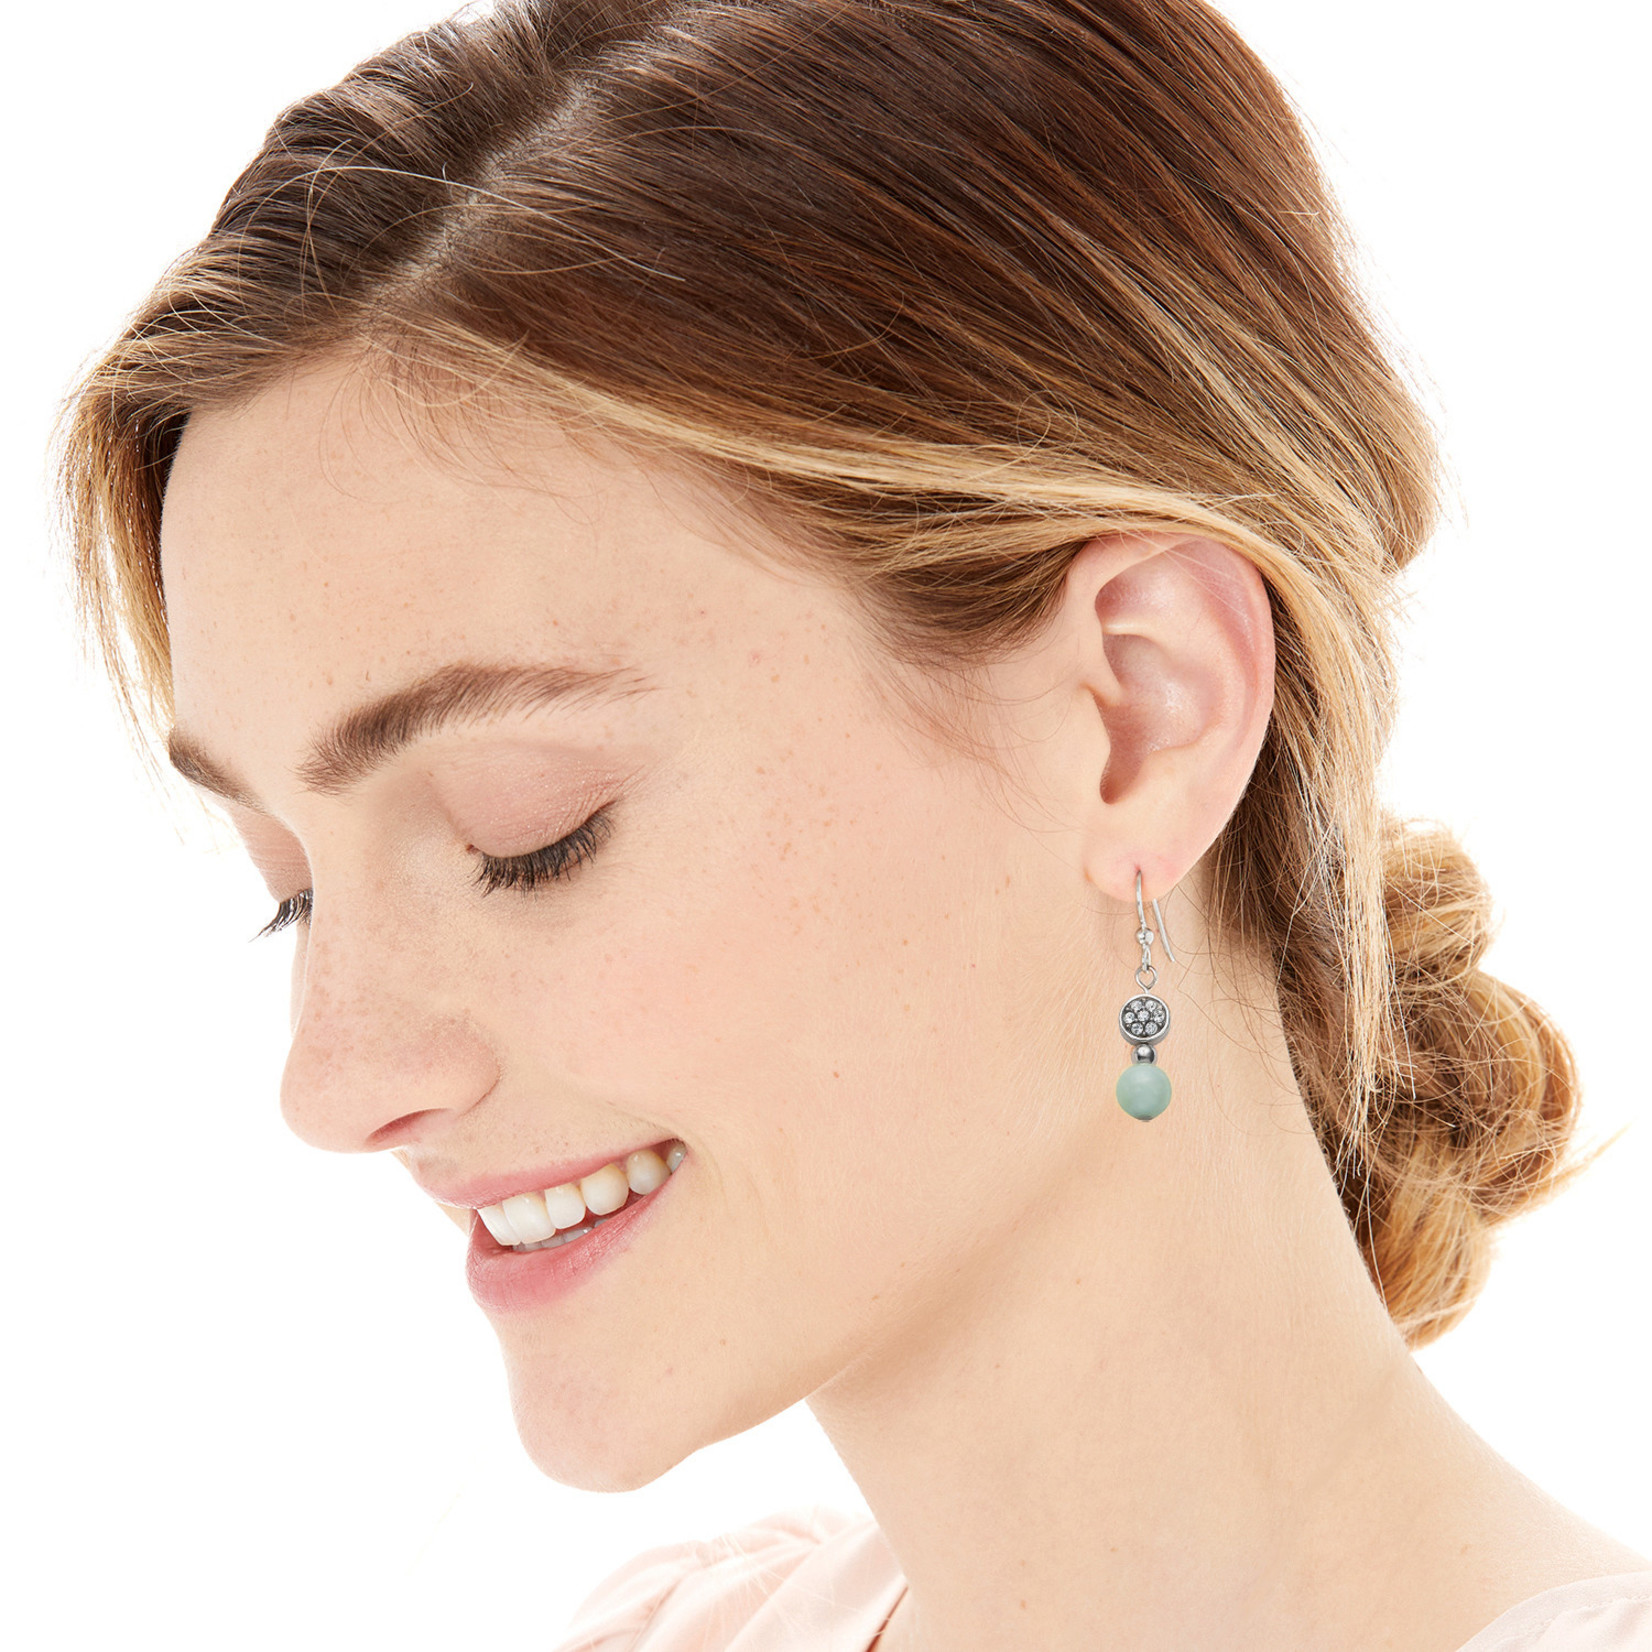 Brighton Meridian Petite Prime French Wire Earrings Silver-Light Blue OS